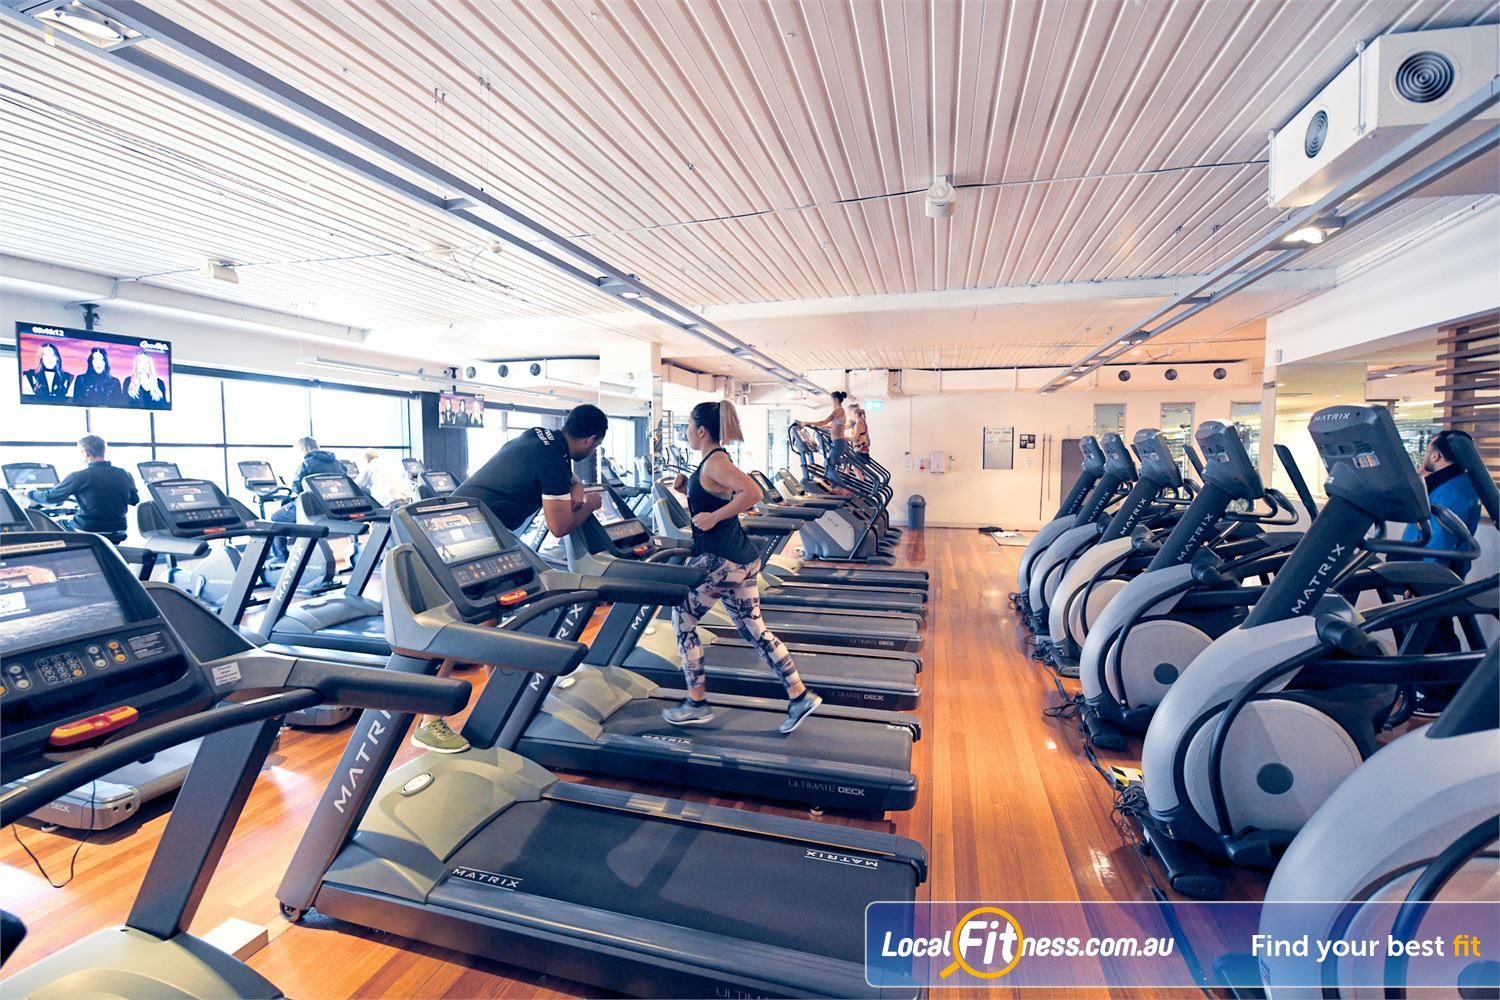 Goodlife Health Clubs Near Brooklyn Our Port Melbourne gym includes state of the art cardio from MATRIX.